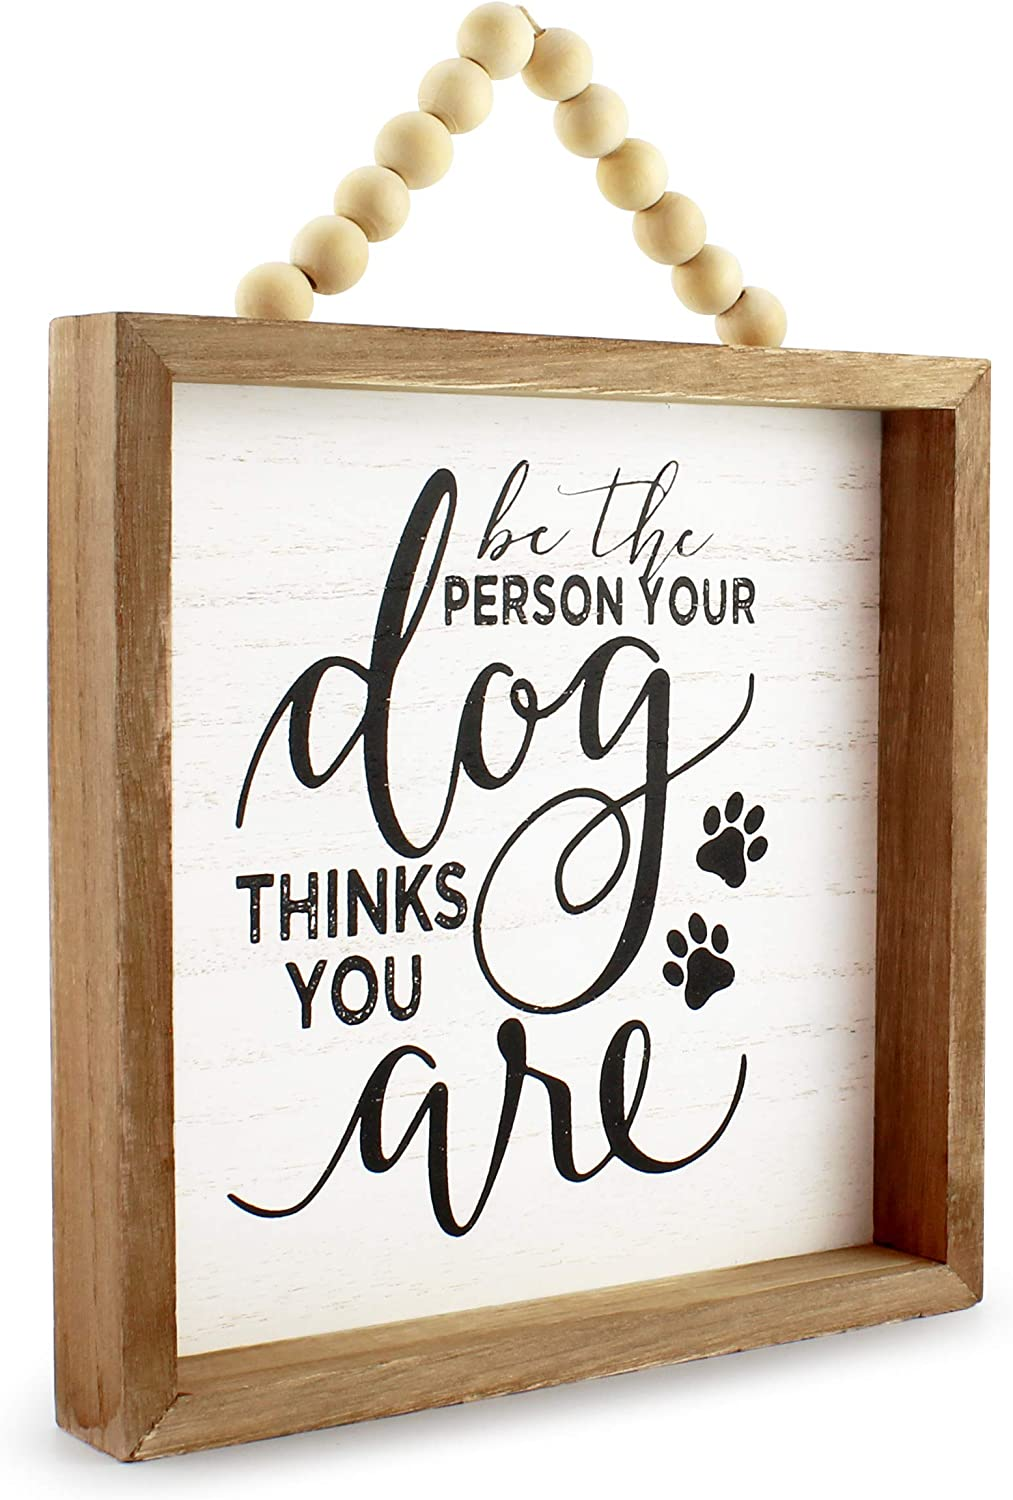 AuldHome Wood Beaded Sign, Dog Quote Plaque 8 x 8, Table/Shelf Freestanding Rustic Farmhouse Sign, Distressed Whitewashed Style